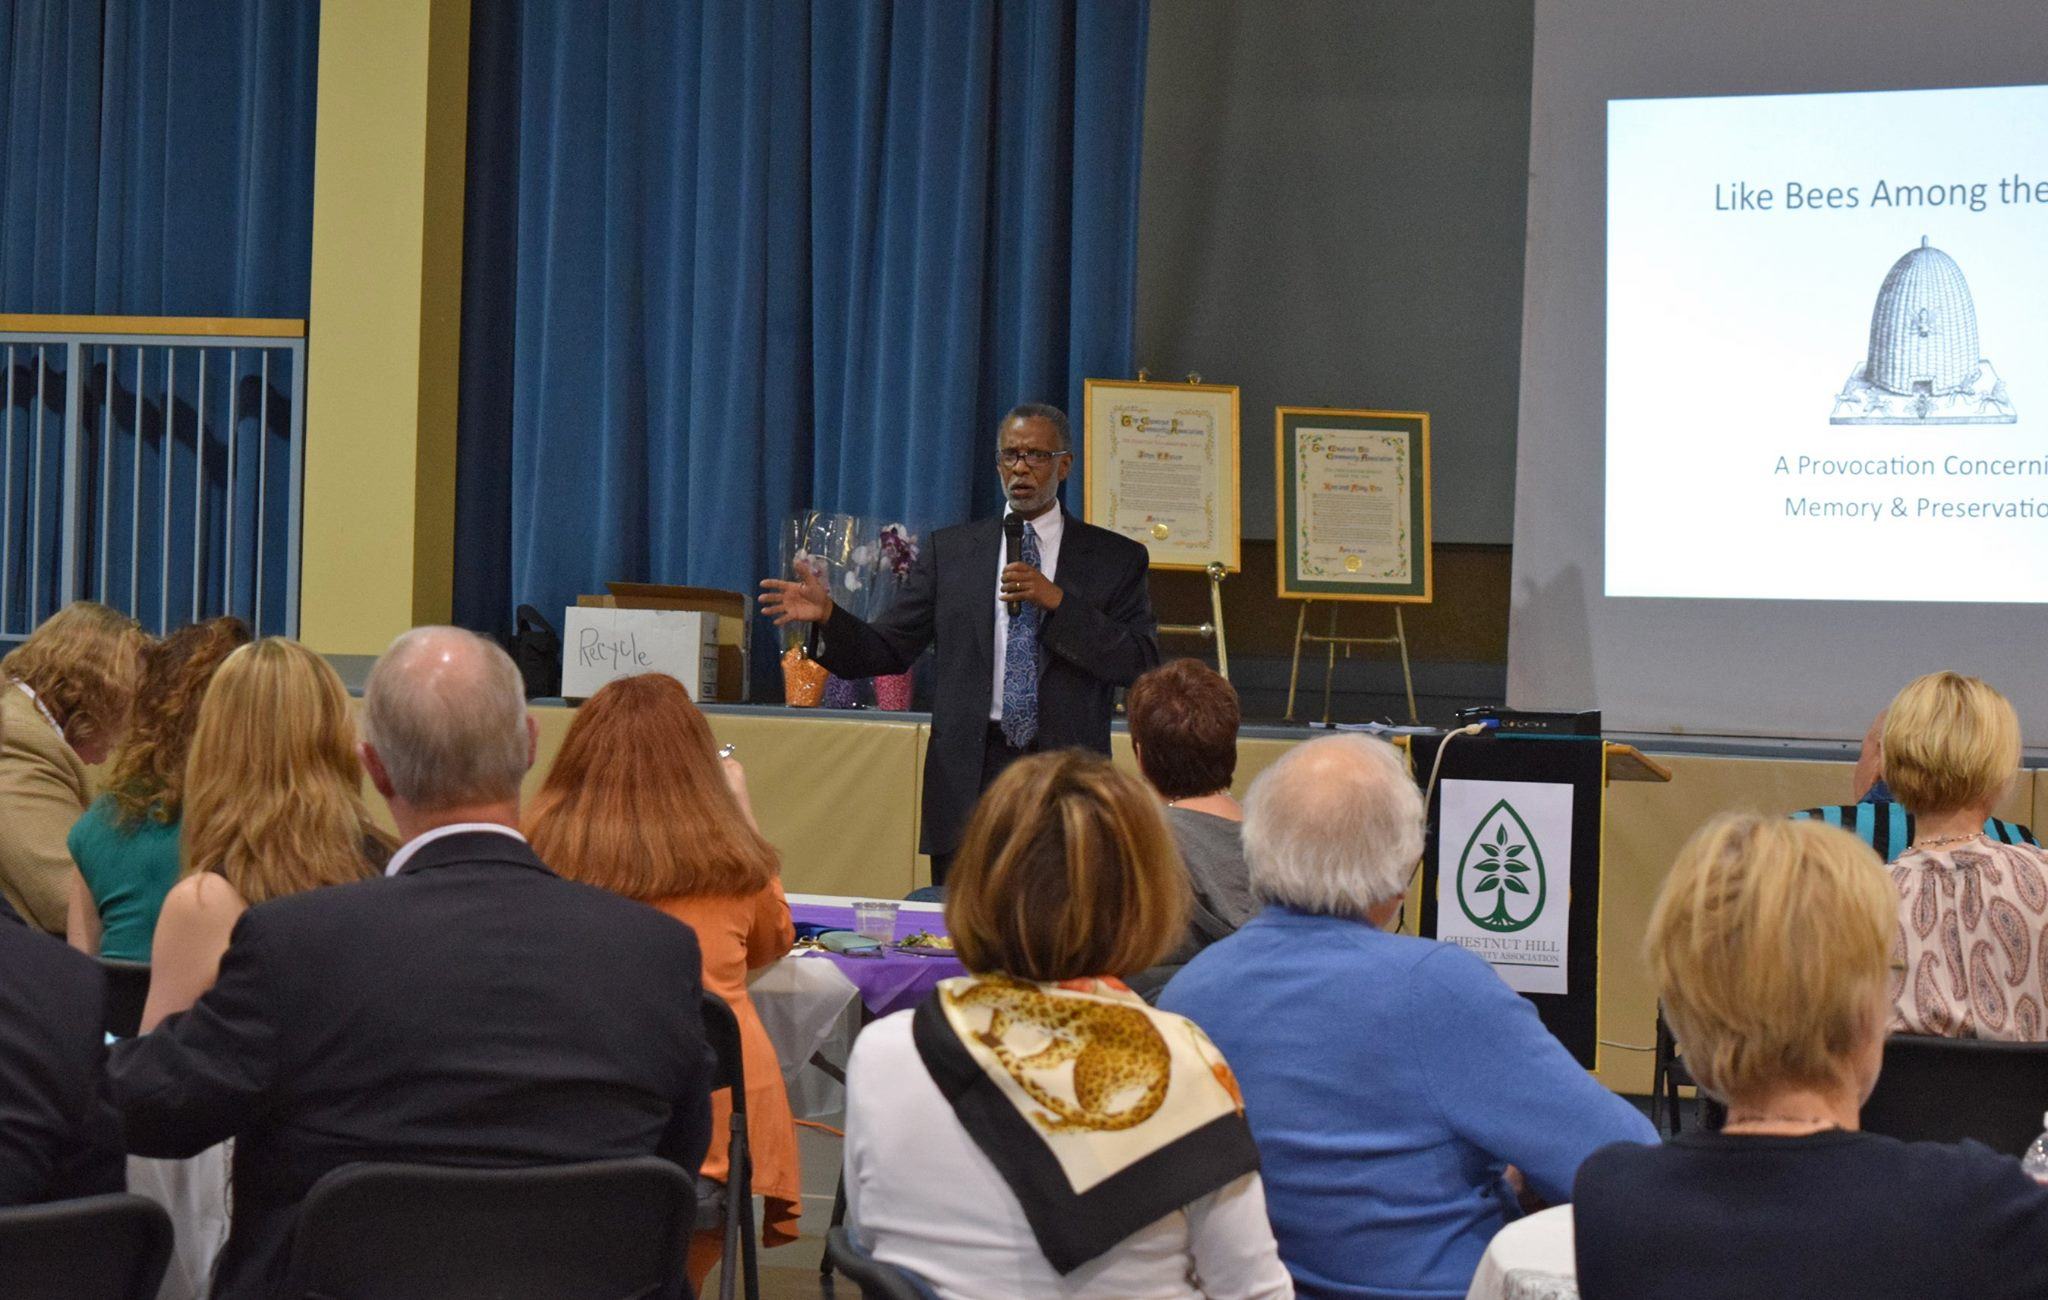 April 21, 2016: Senator Haywood speaks at the Chestnut Hill Community Association Annual Meeting.